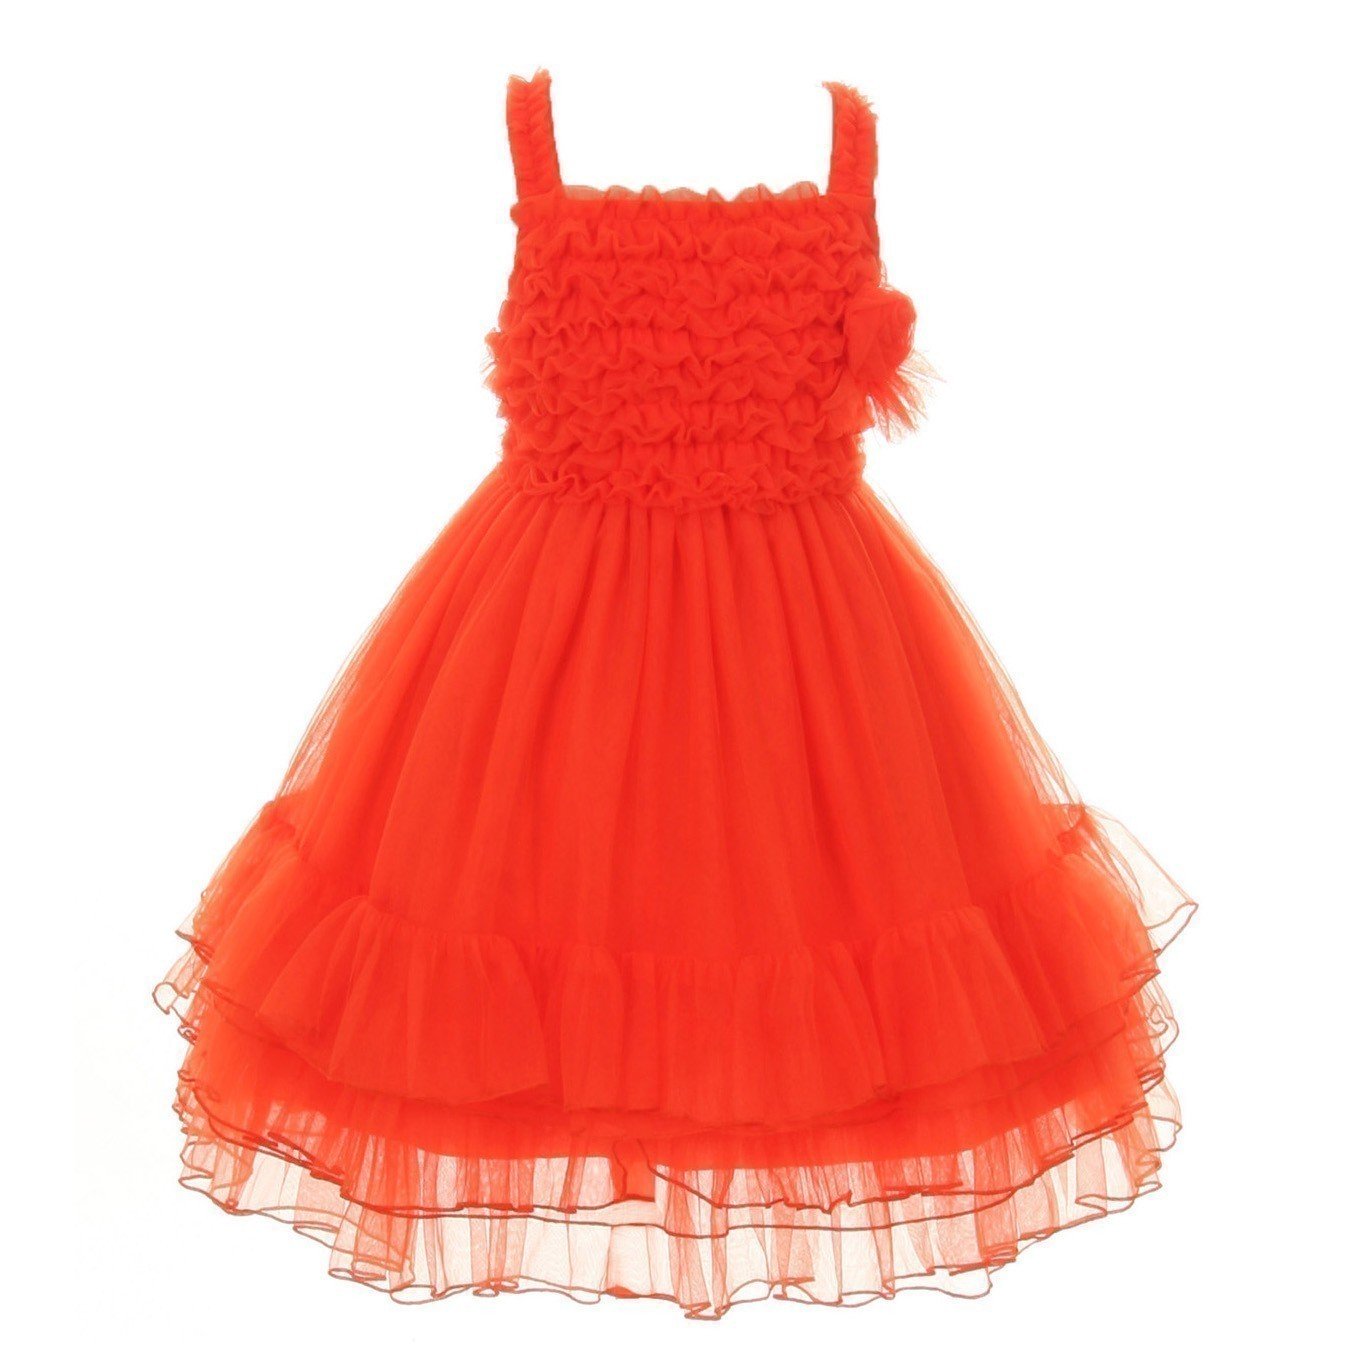 Kids Dream Little Girls Orange Ruffled Flower Mesh Tutu Special Occasion Dress 6